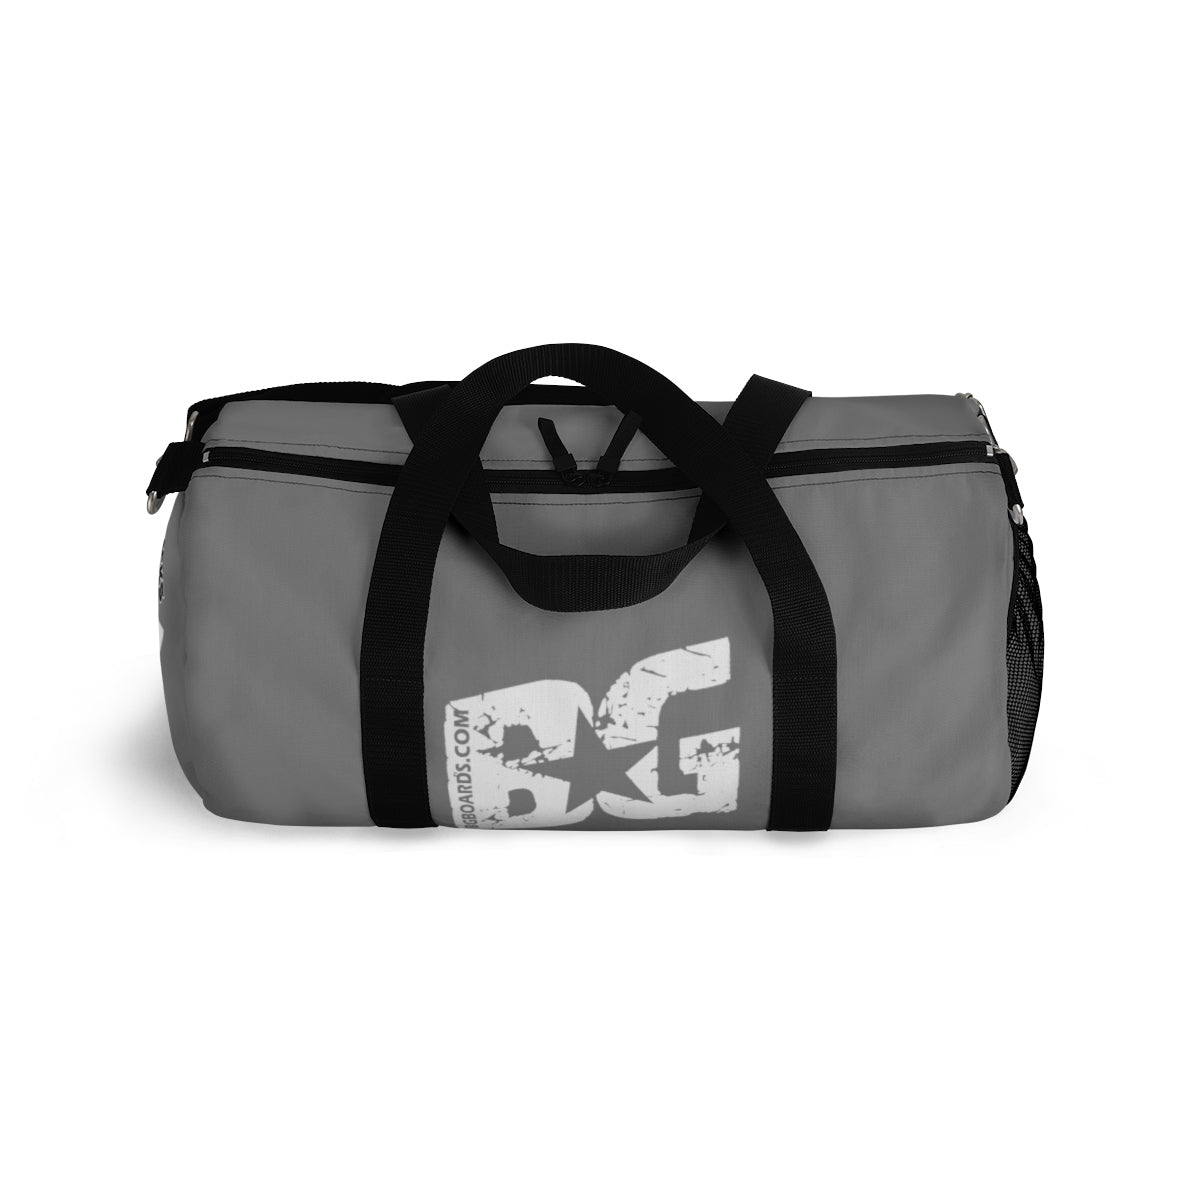 BG BIG SACK GRAY DUFFLE BAG